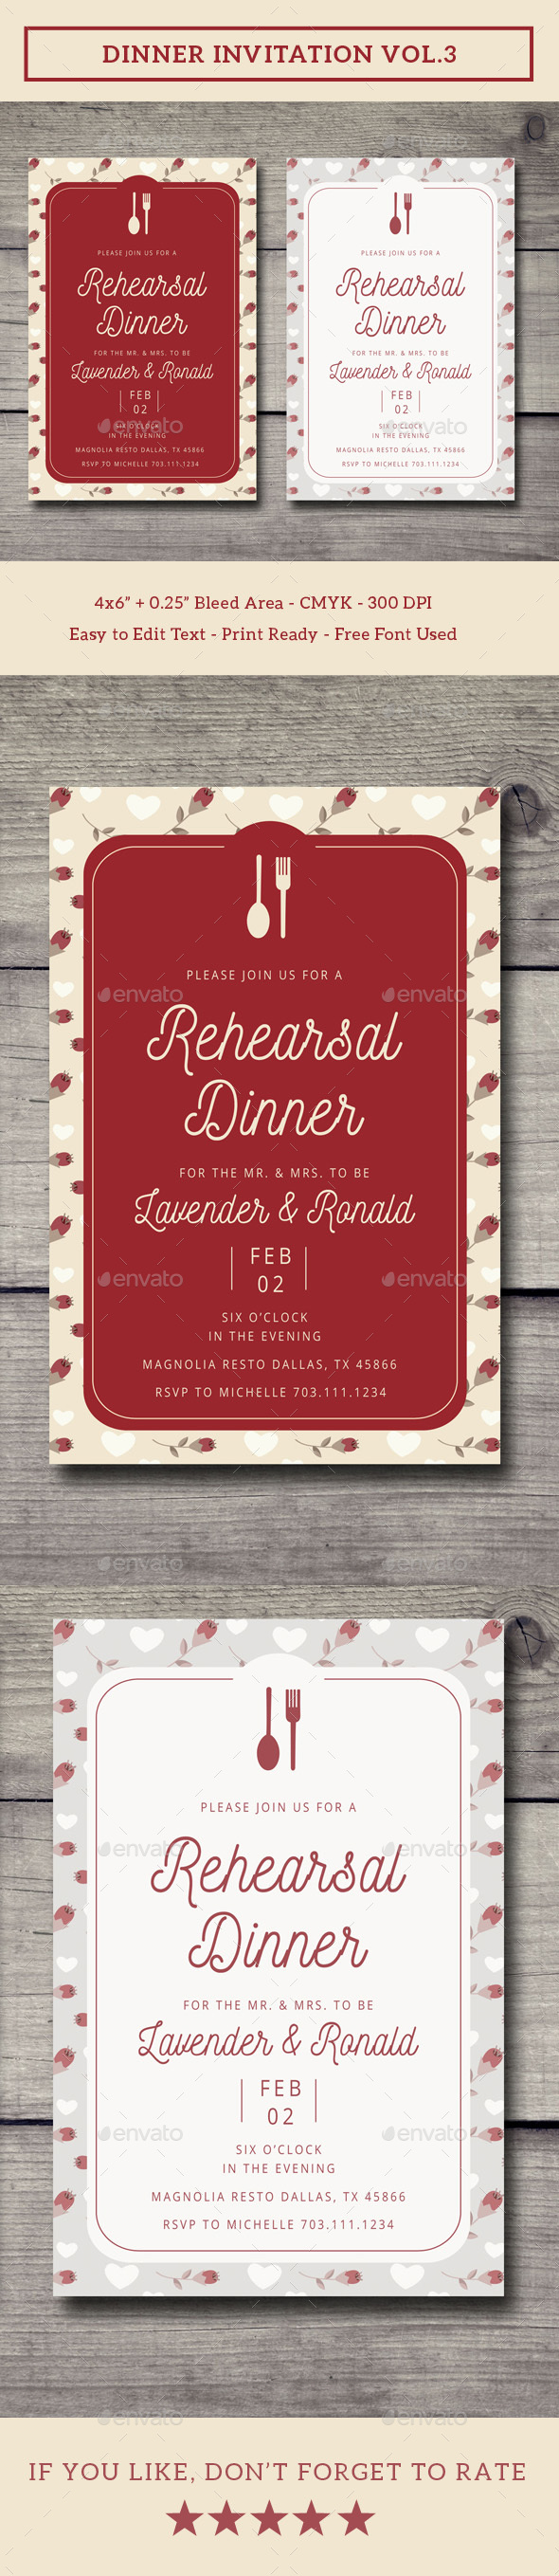 Invitation Templates from GraphicRiver (Page 8)